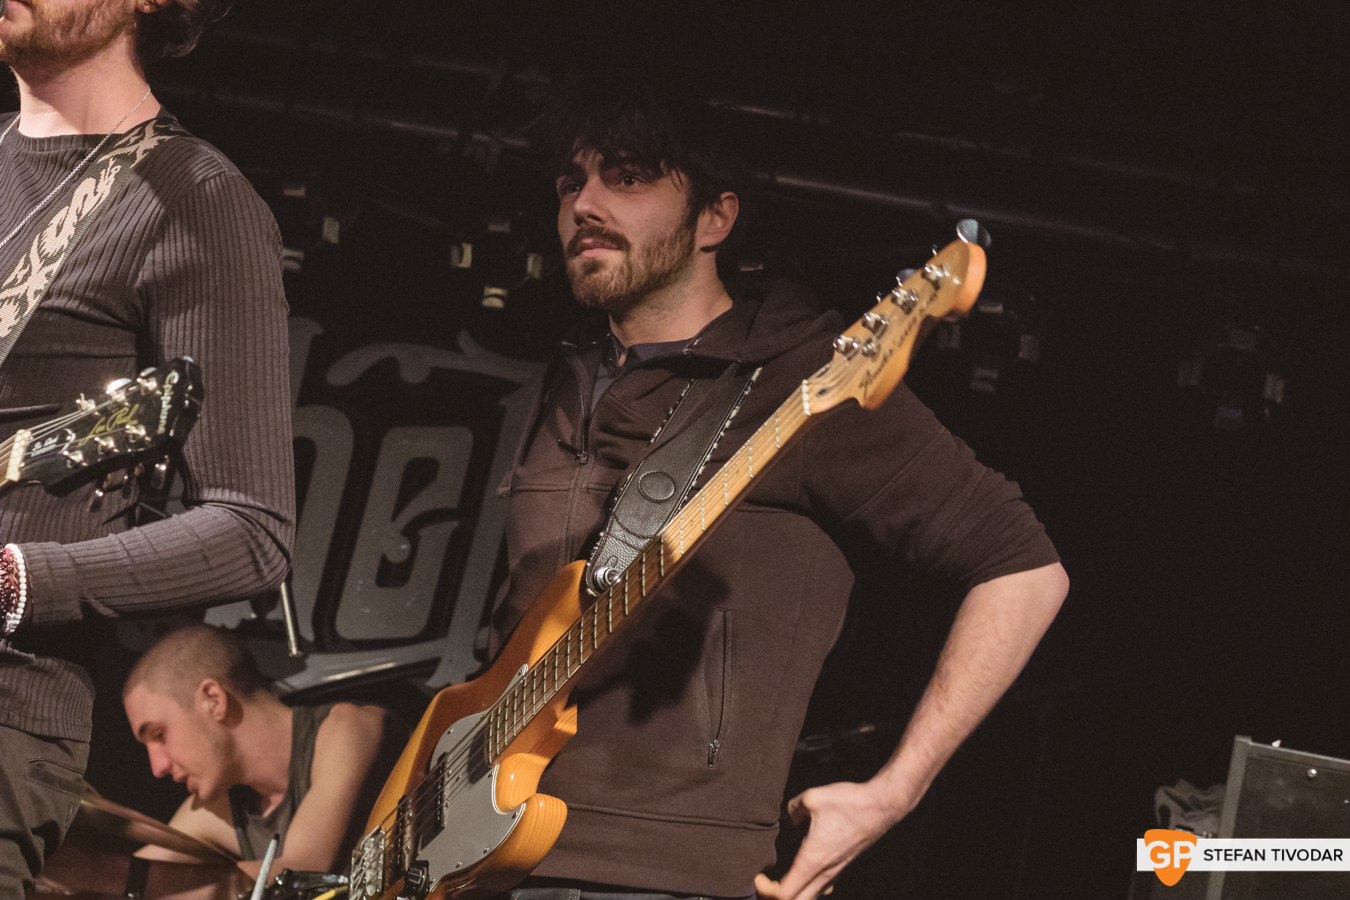 Synk Whelans Ones to Watch Winter 2019 Day Whelans Ones to Watch Winter 2019 Day 5 4